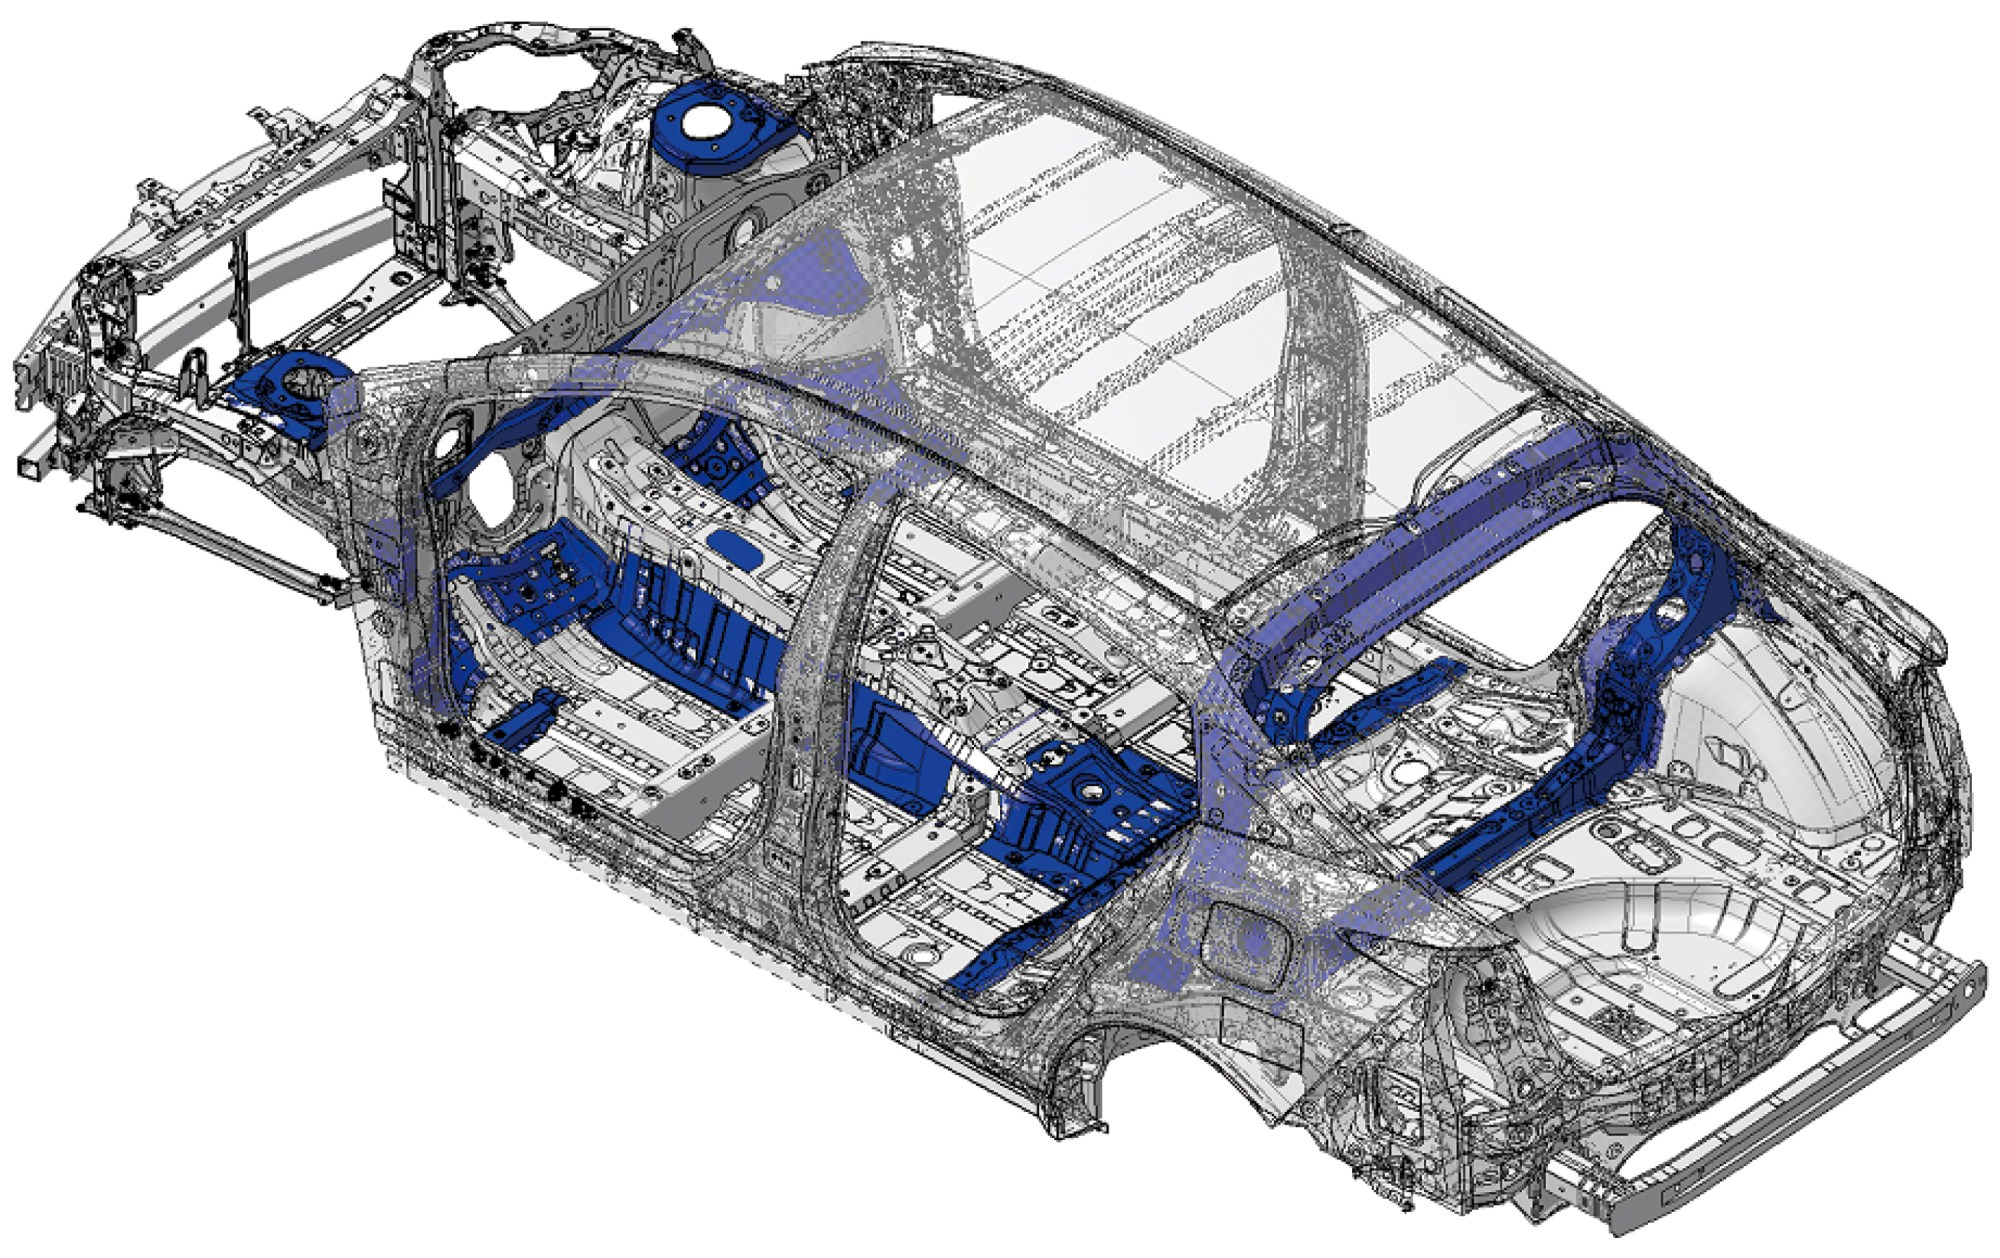 hight resolution of however it seems that the red and possibly some of the blue prius sections depicted might indicate the high tensile strength steel referenced in